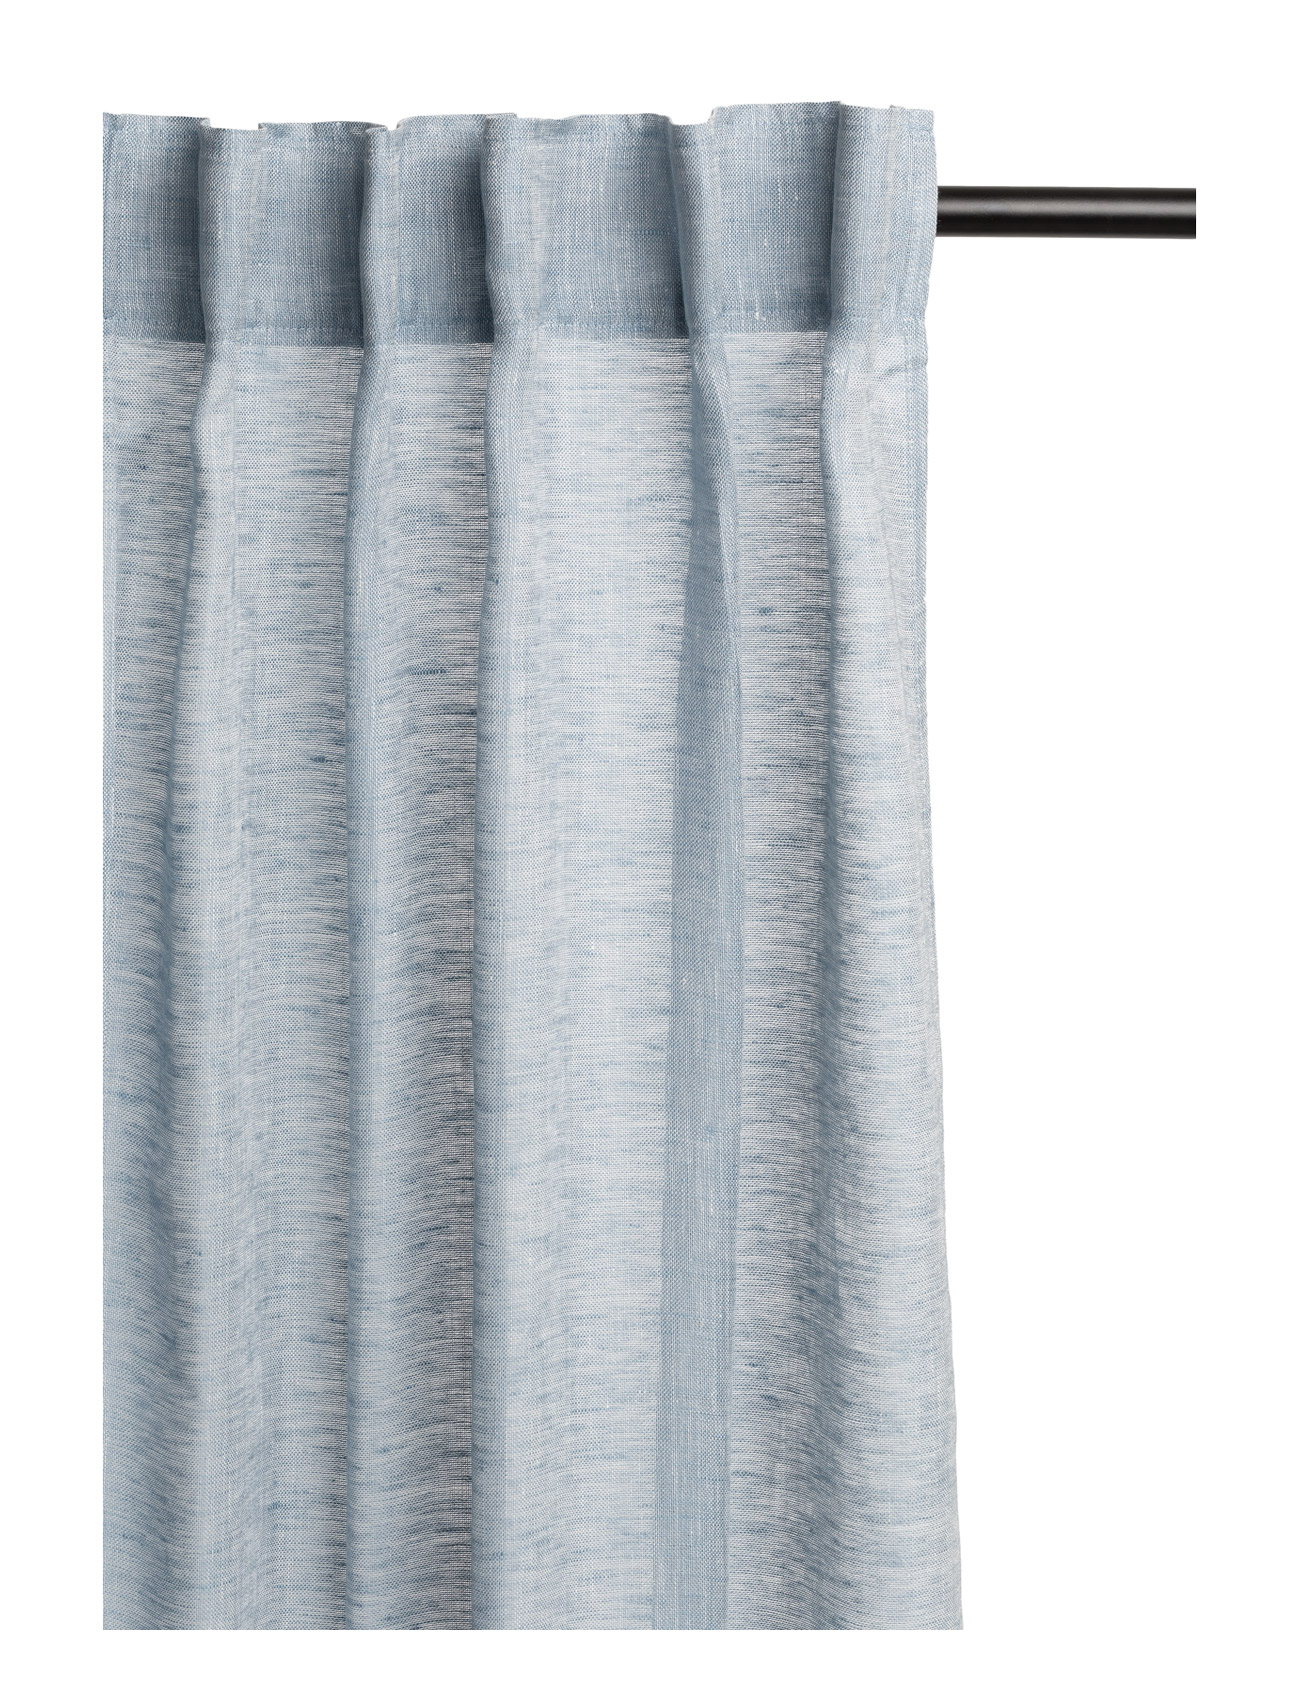 Dalsland Curtain Himla Accessories til Unisex i